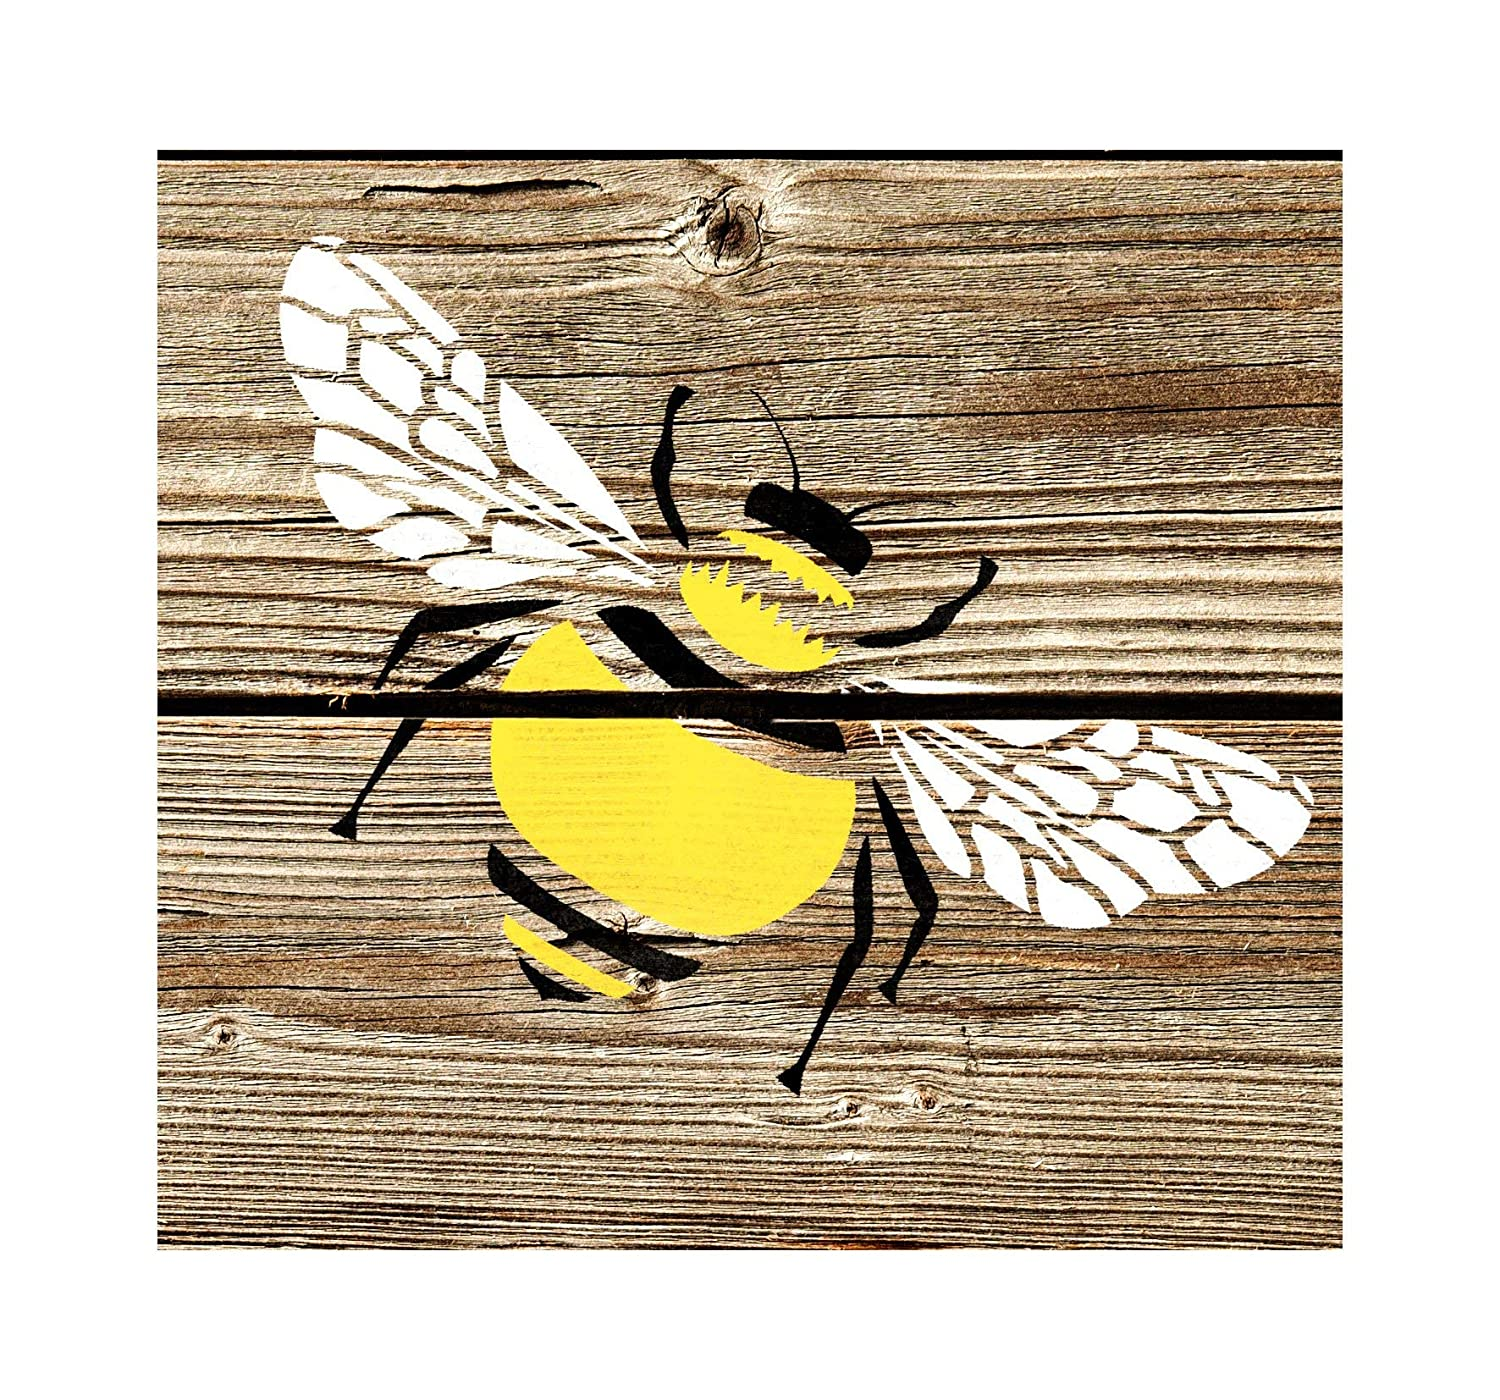 Bumble Bee Furniture Floor Wall Stencil for Painting S Dizzy Duck Designs